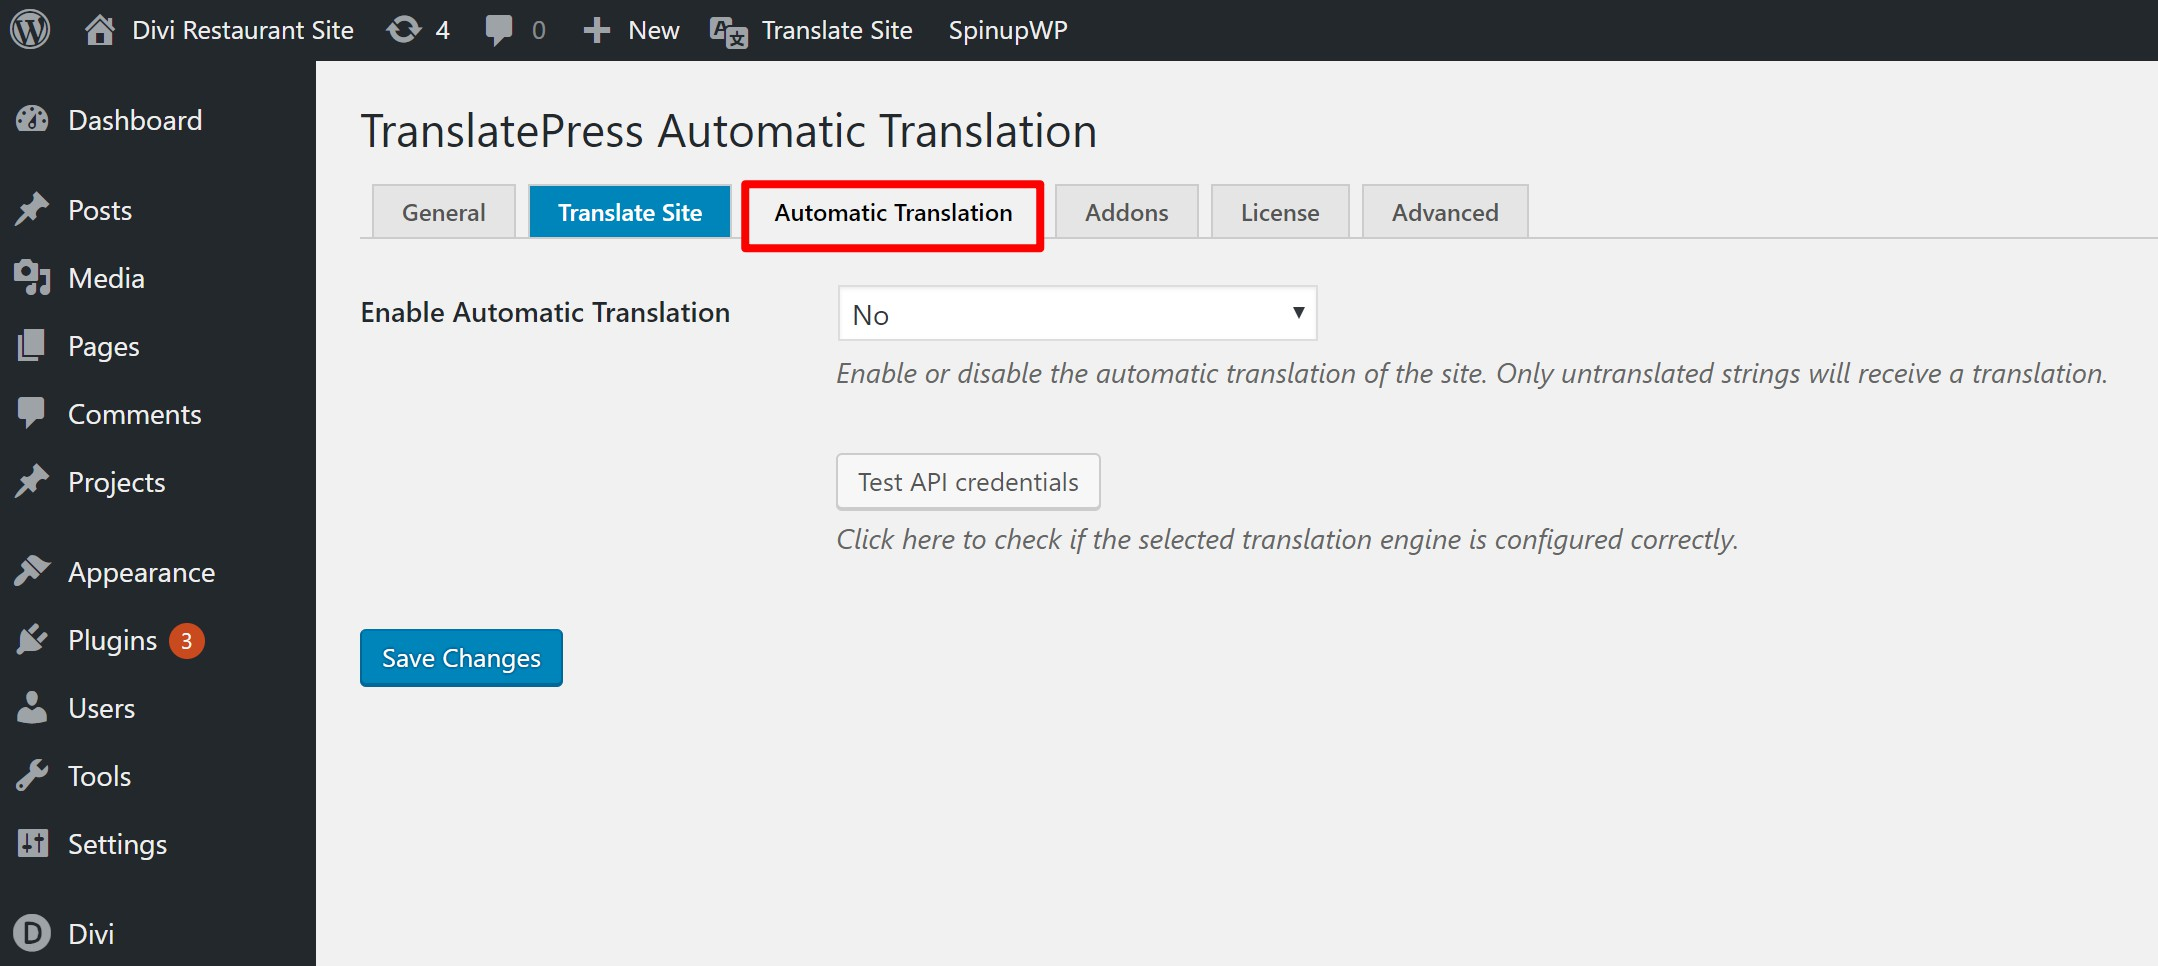 Automatic translation feature in TranslatePress